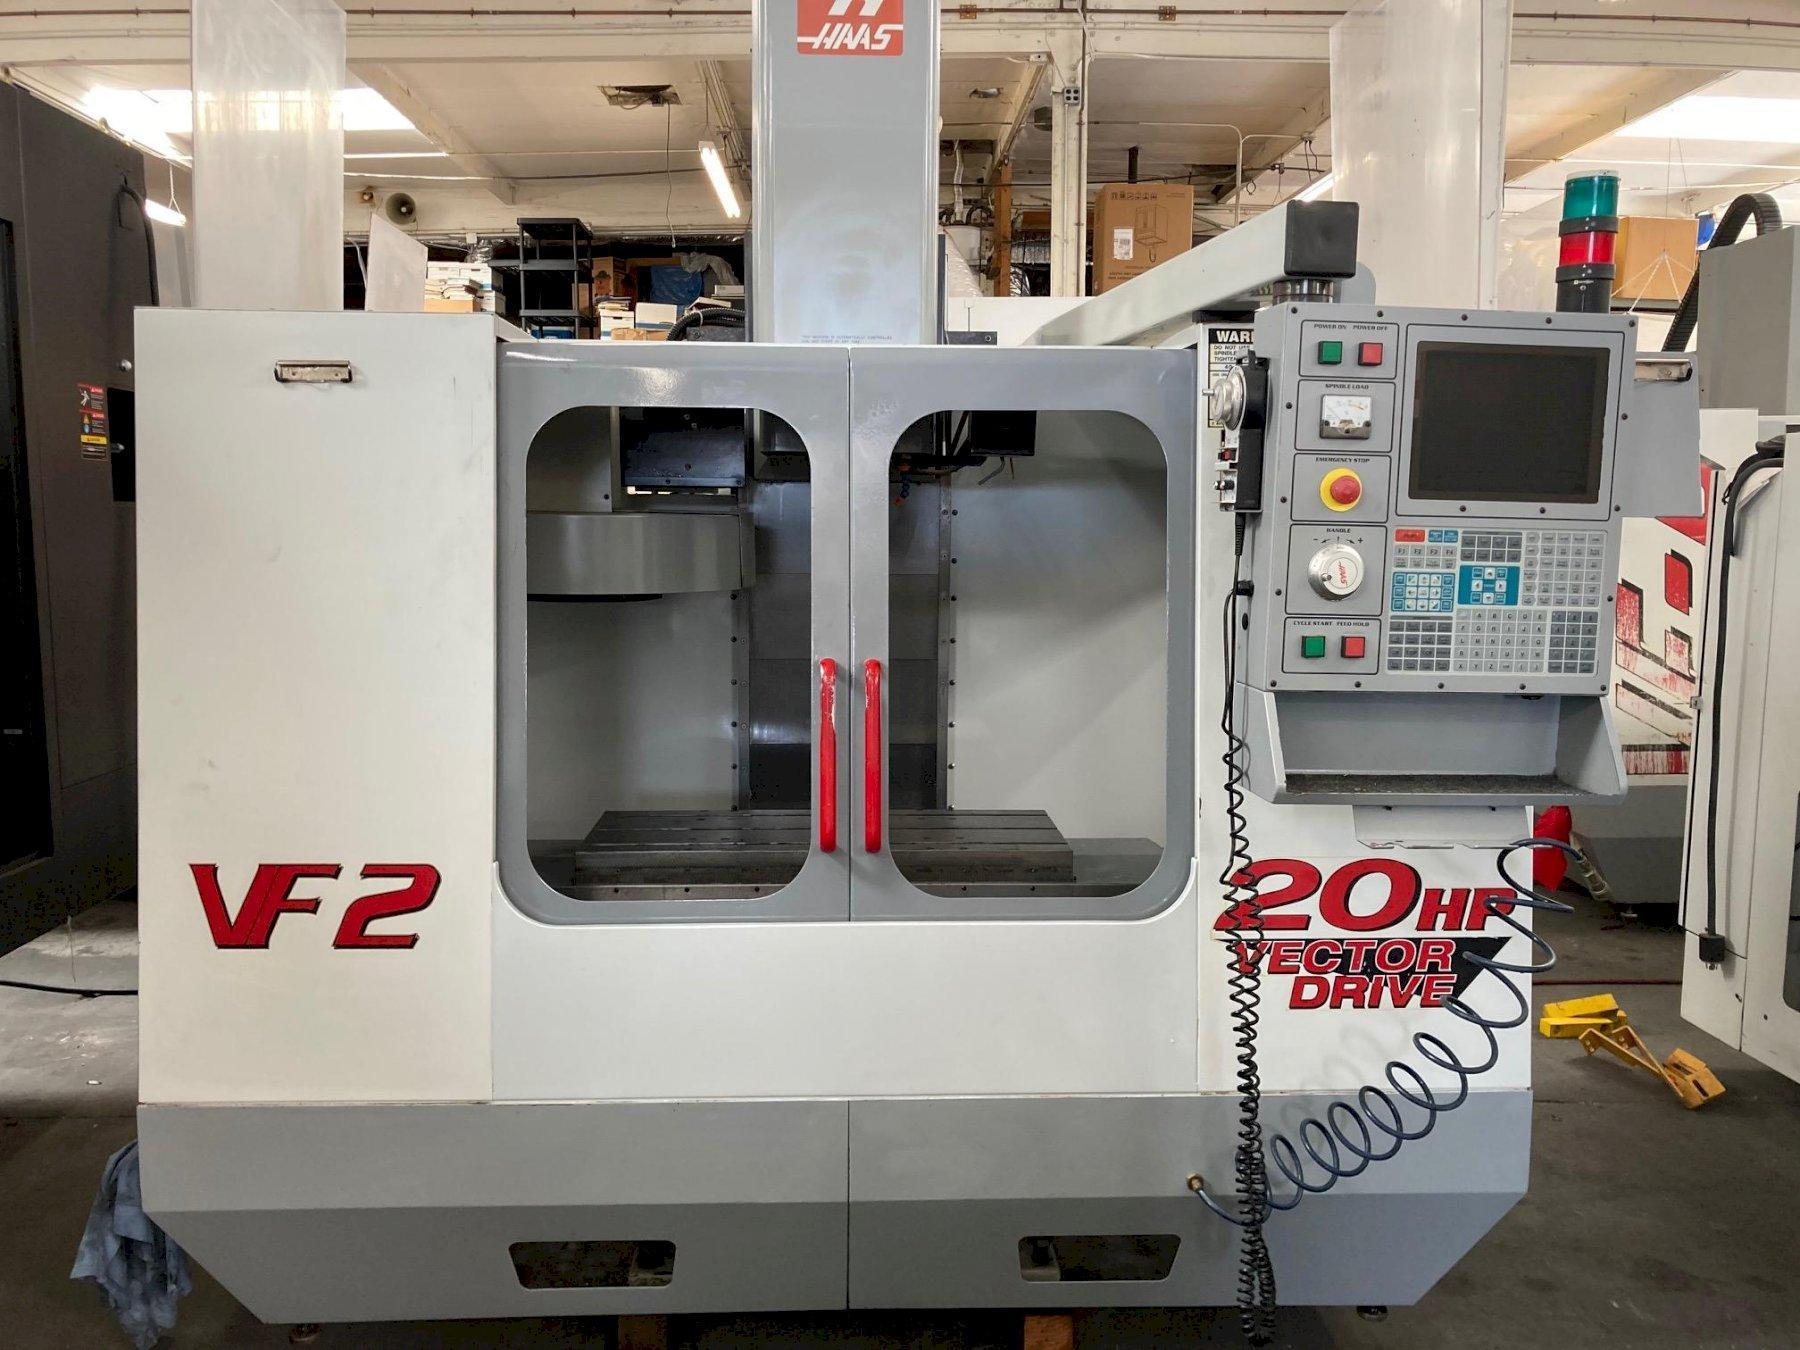 Haas VF-2 VMC 2000 with: Haas CNC Control, Programmable Coolant Nozzle, 20-HP Vector Drive, RJH, Chip Auger, and Coolant Tank.